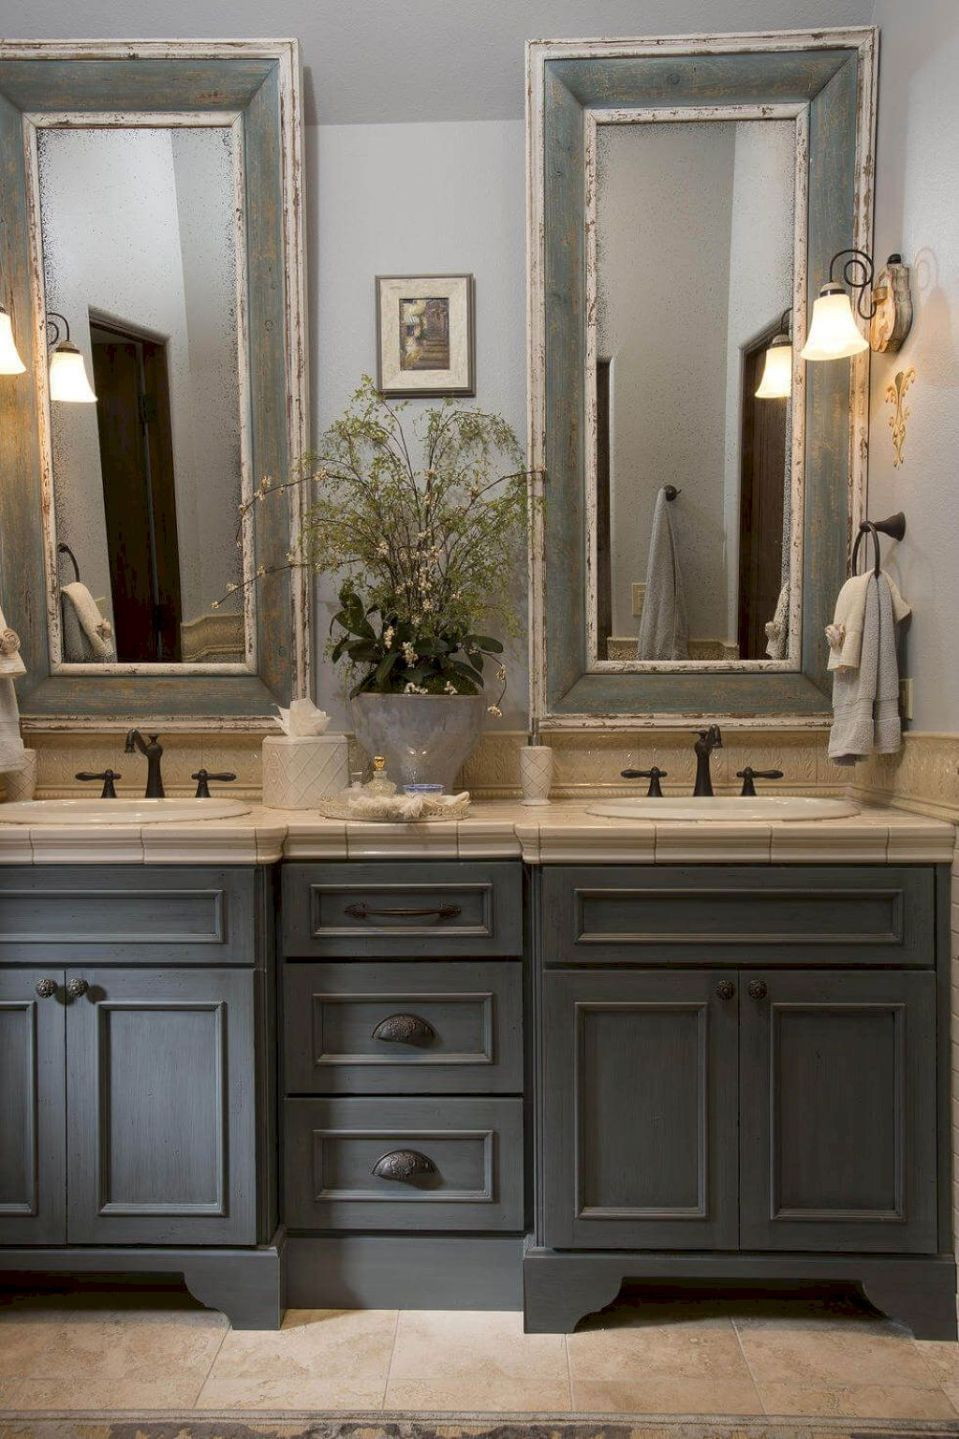 Remodeling Your Bathroom How You Can Pay For It Salle De Bain Campagne Salle De Bain Traditionnelle Idee Salle De Bain